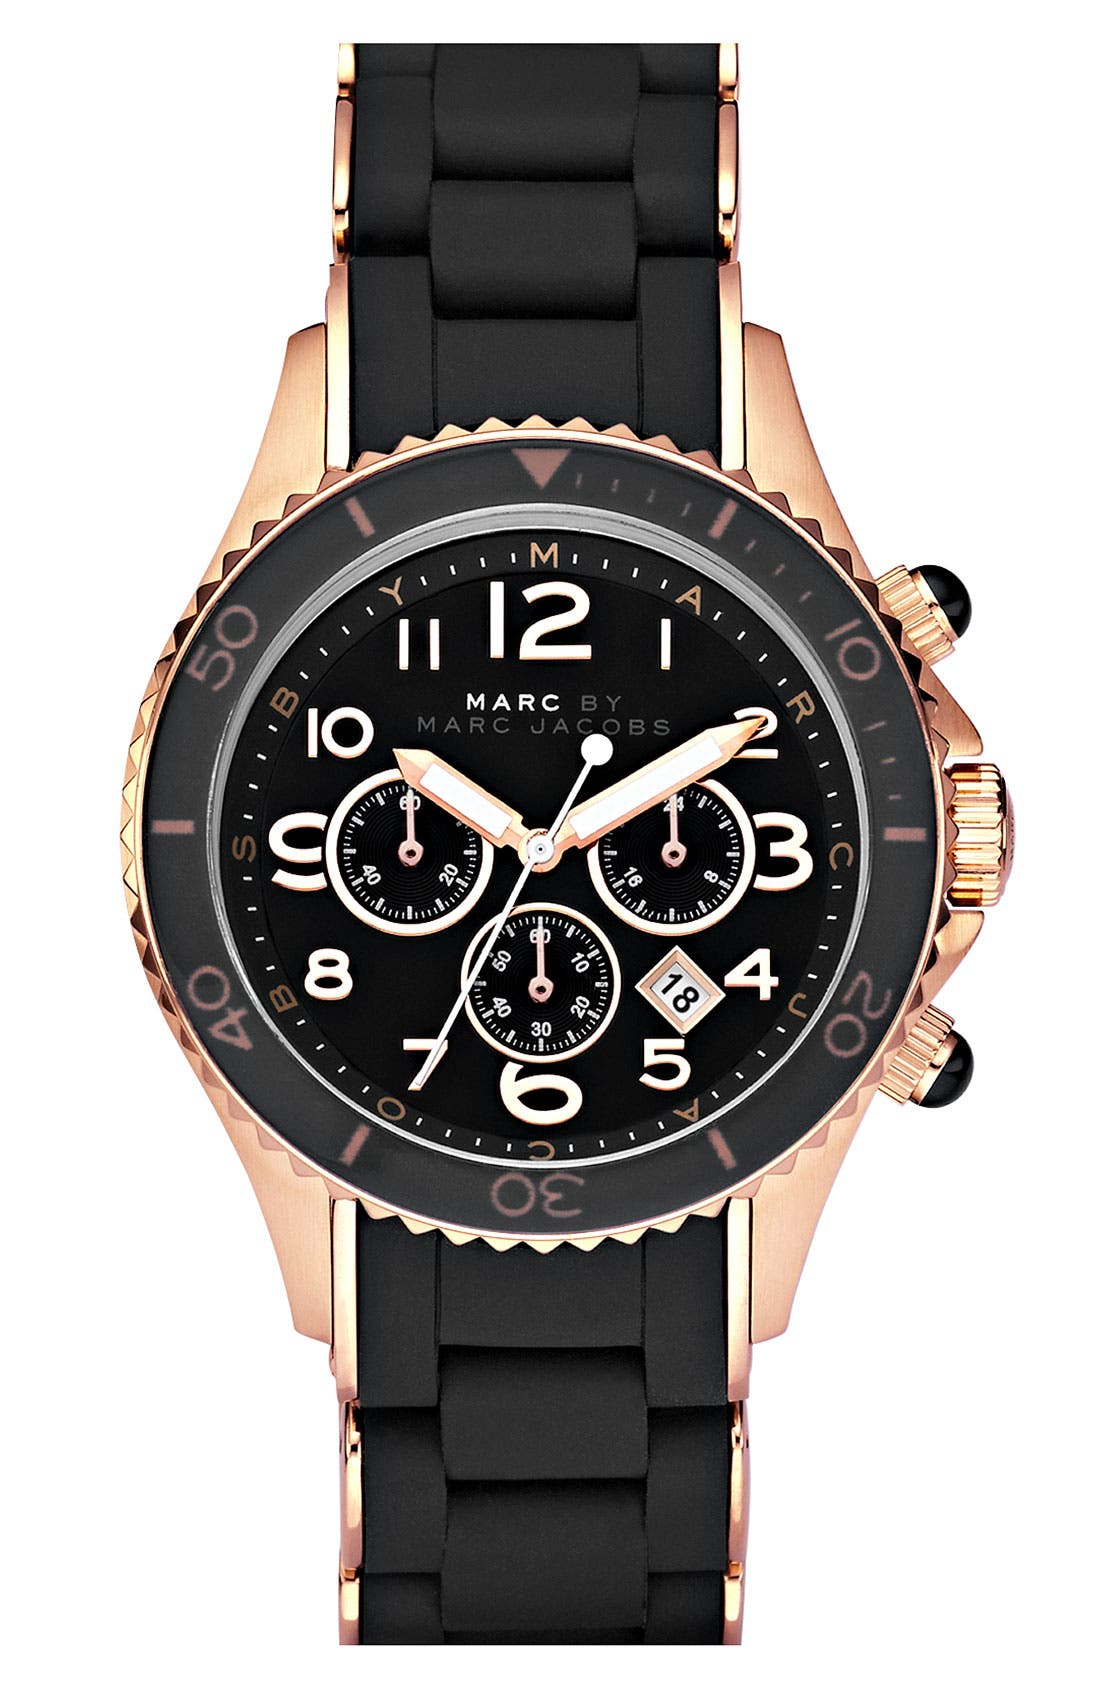 Main Image - MARC JACOBS 'Rock' Chronograph Silicone Bracelet Watch